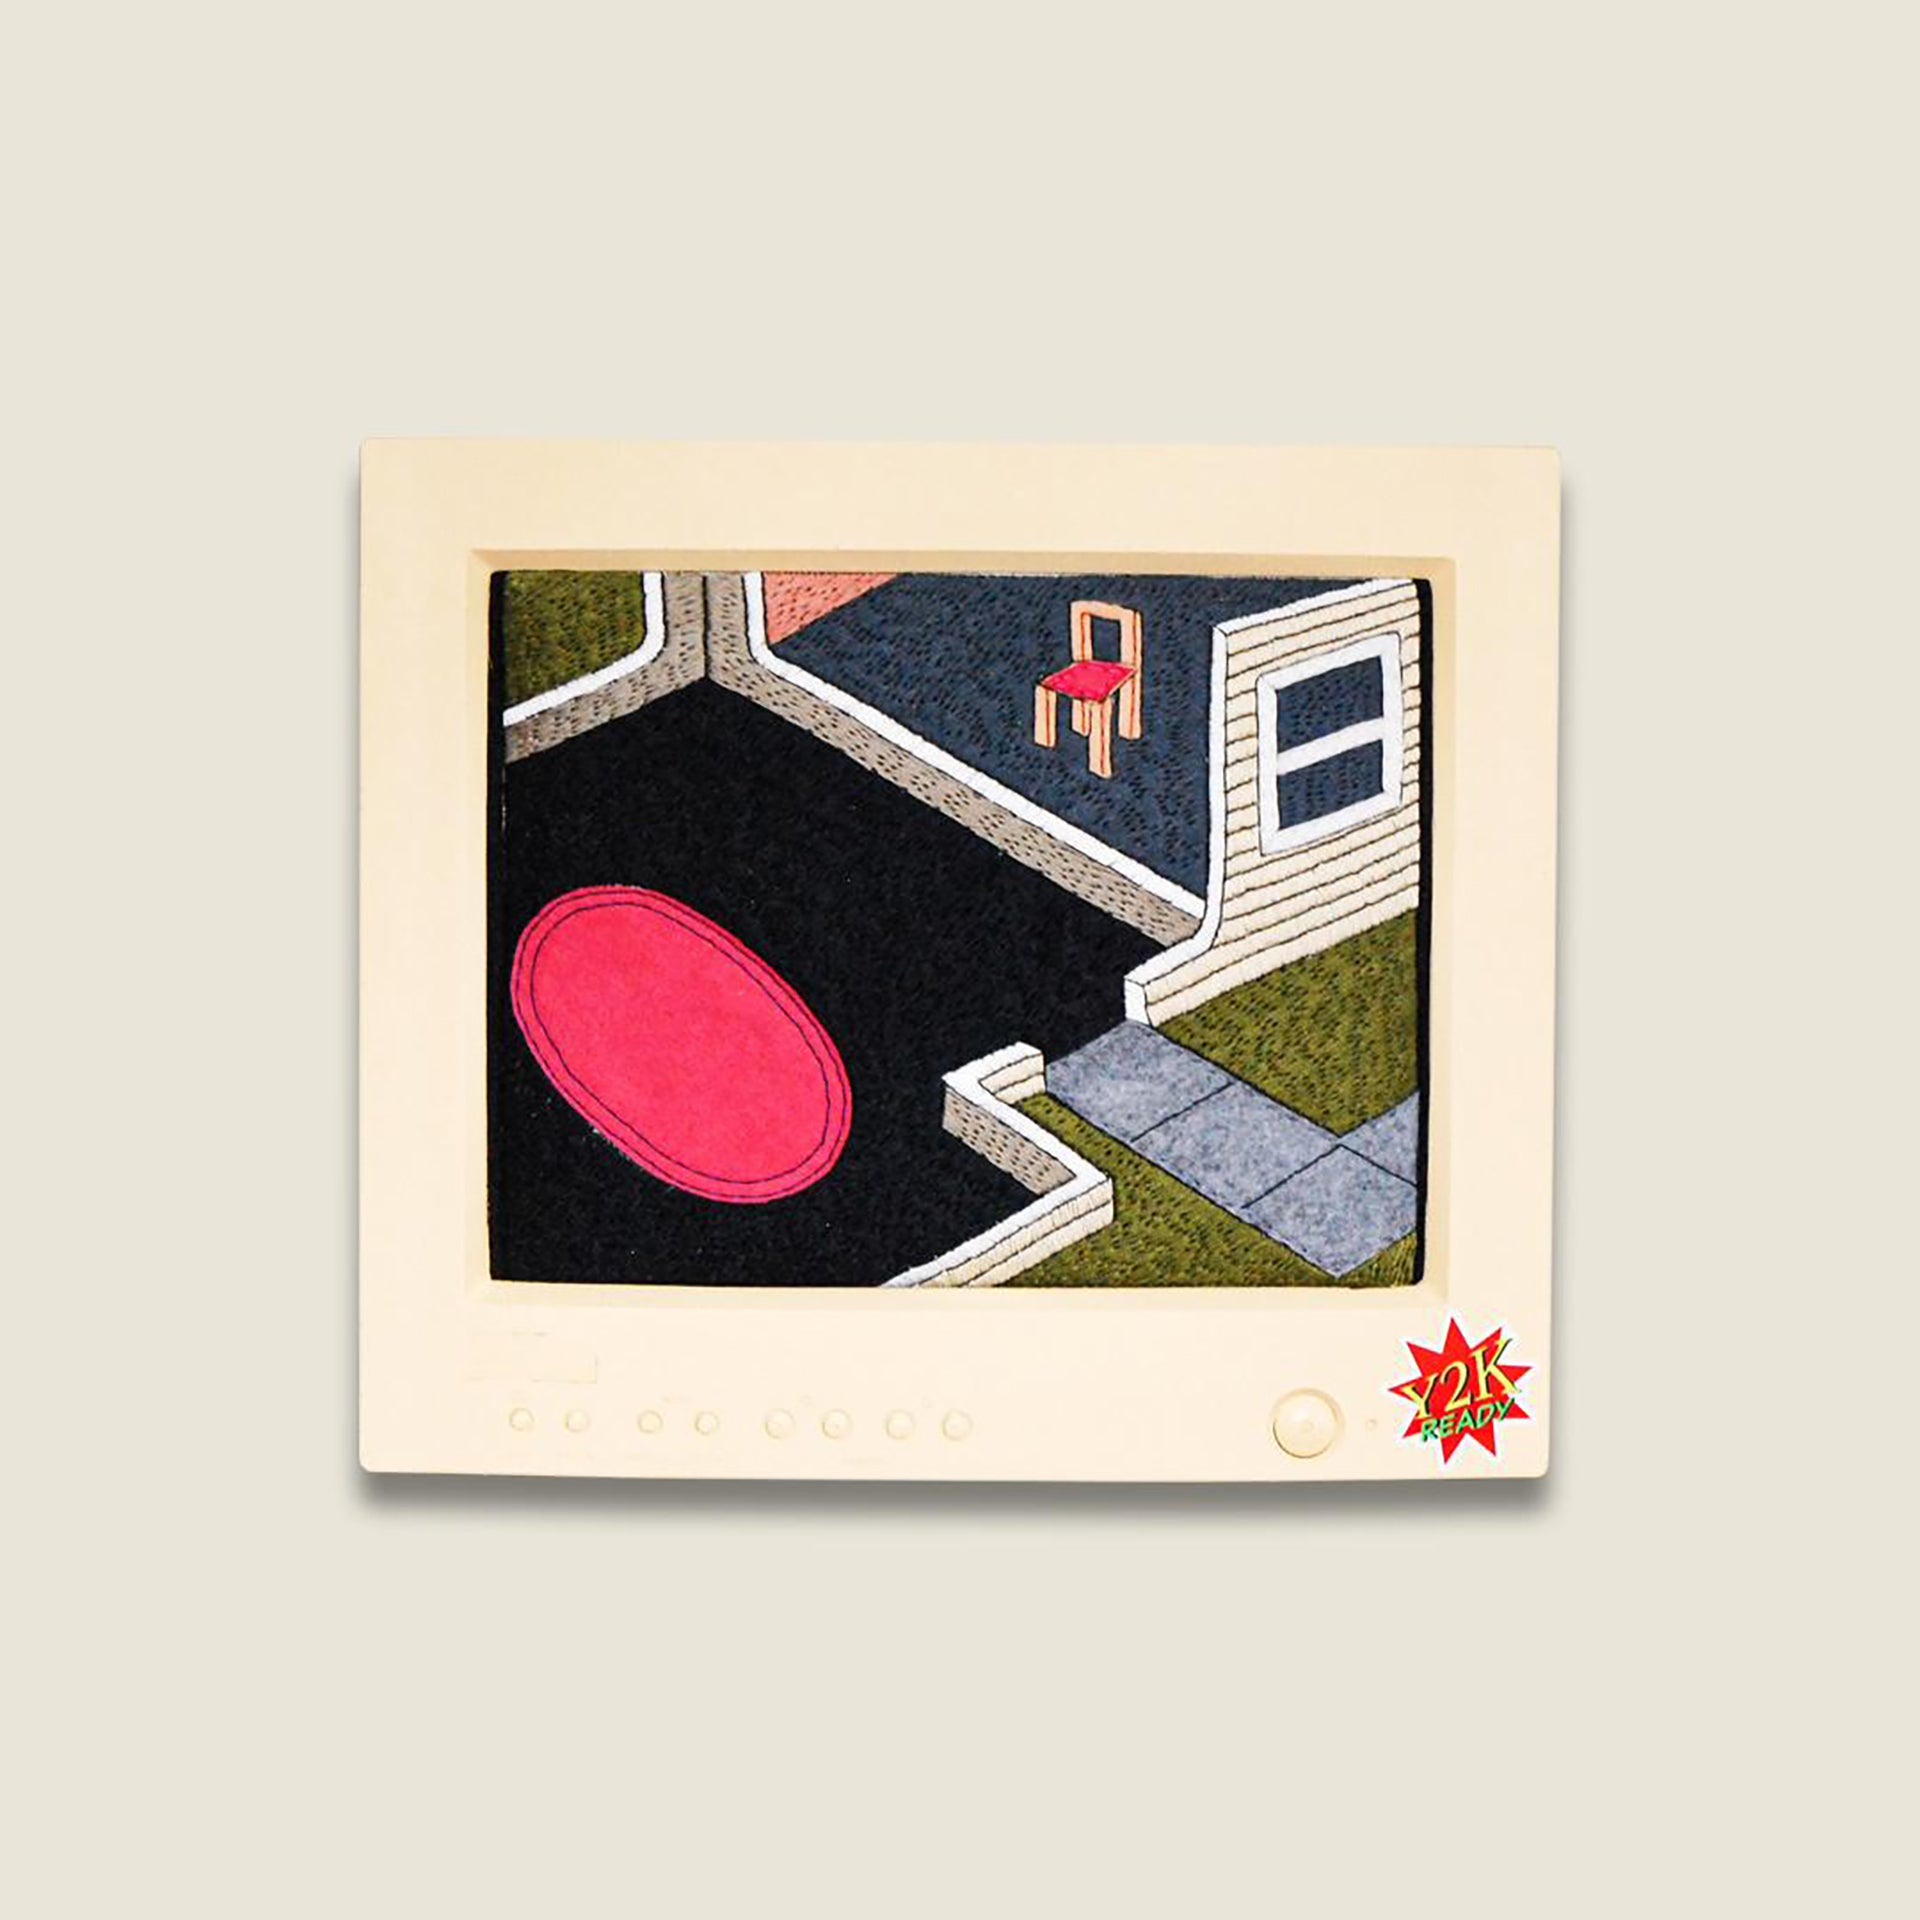 Embroidery artwork of a computer game style layout of a house interior, including pathway leading to front door and red rug in main room.